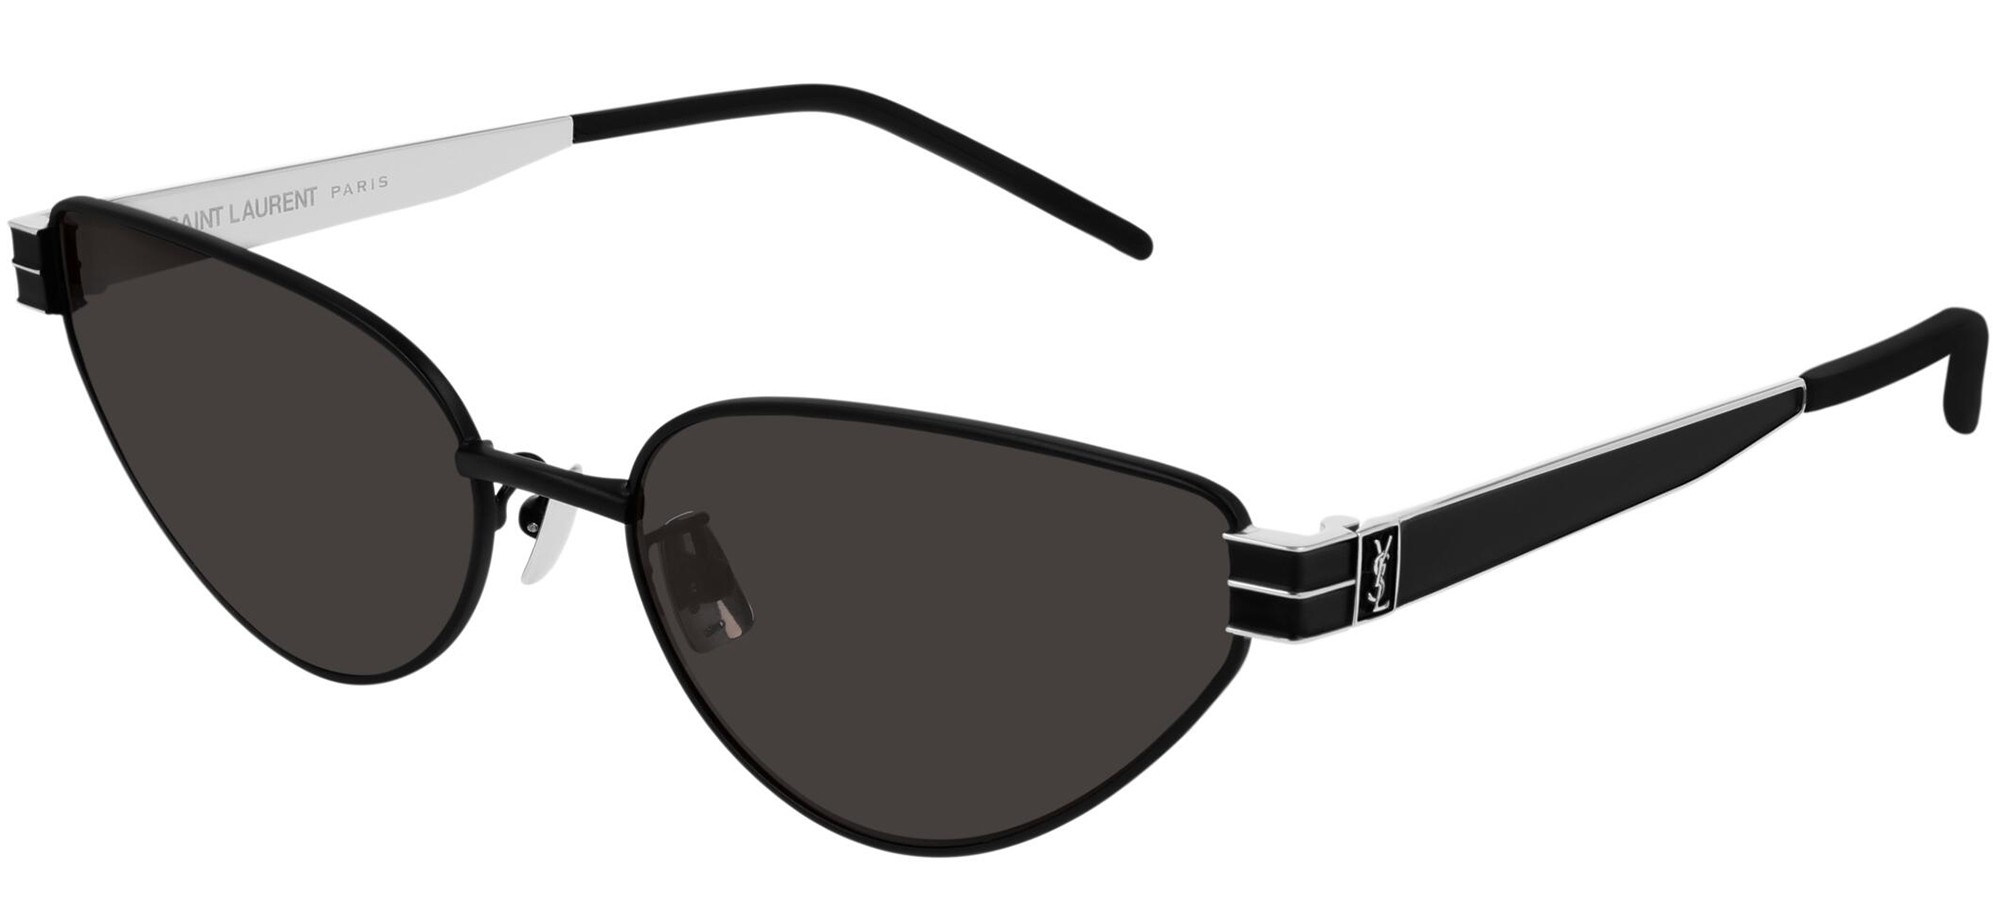 Saint Laurent sunglasses SL M51